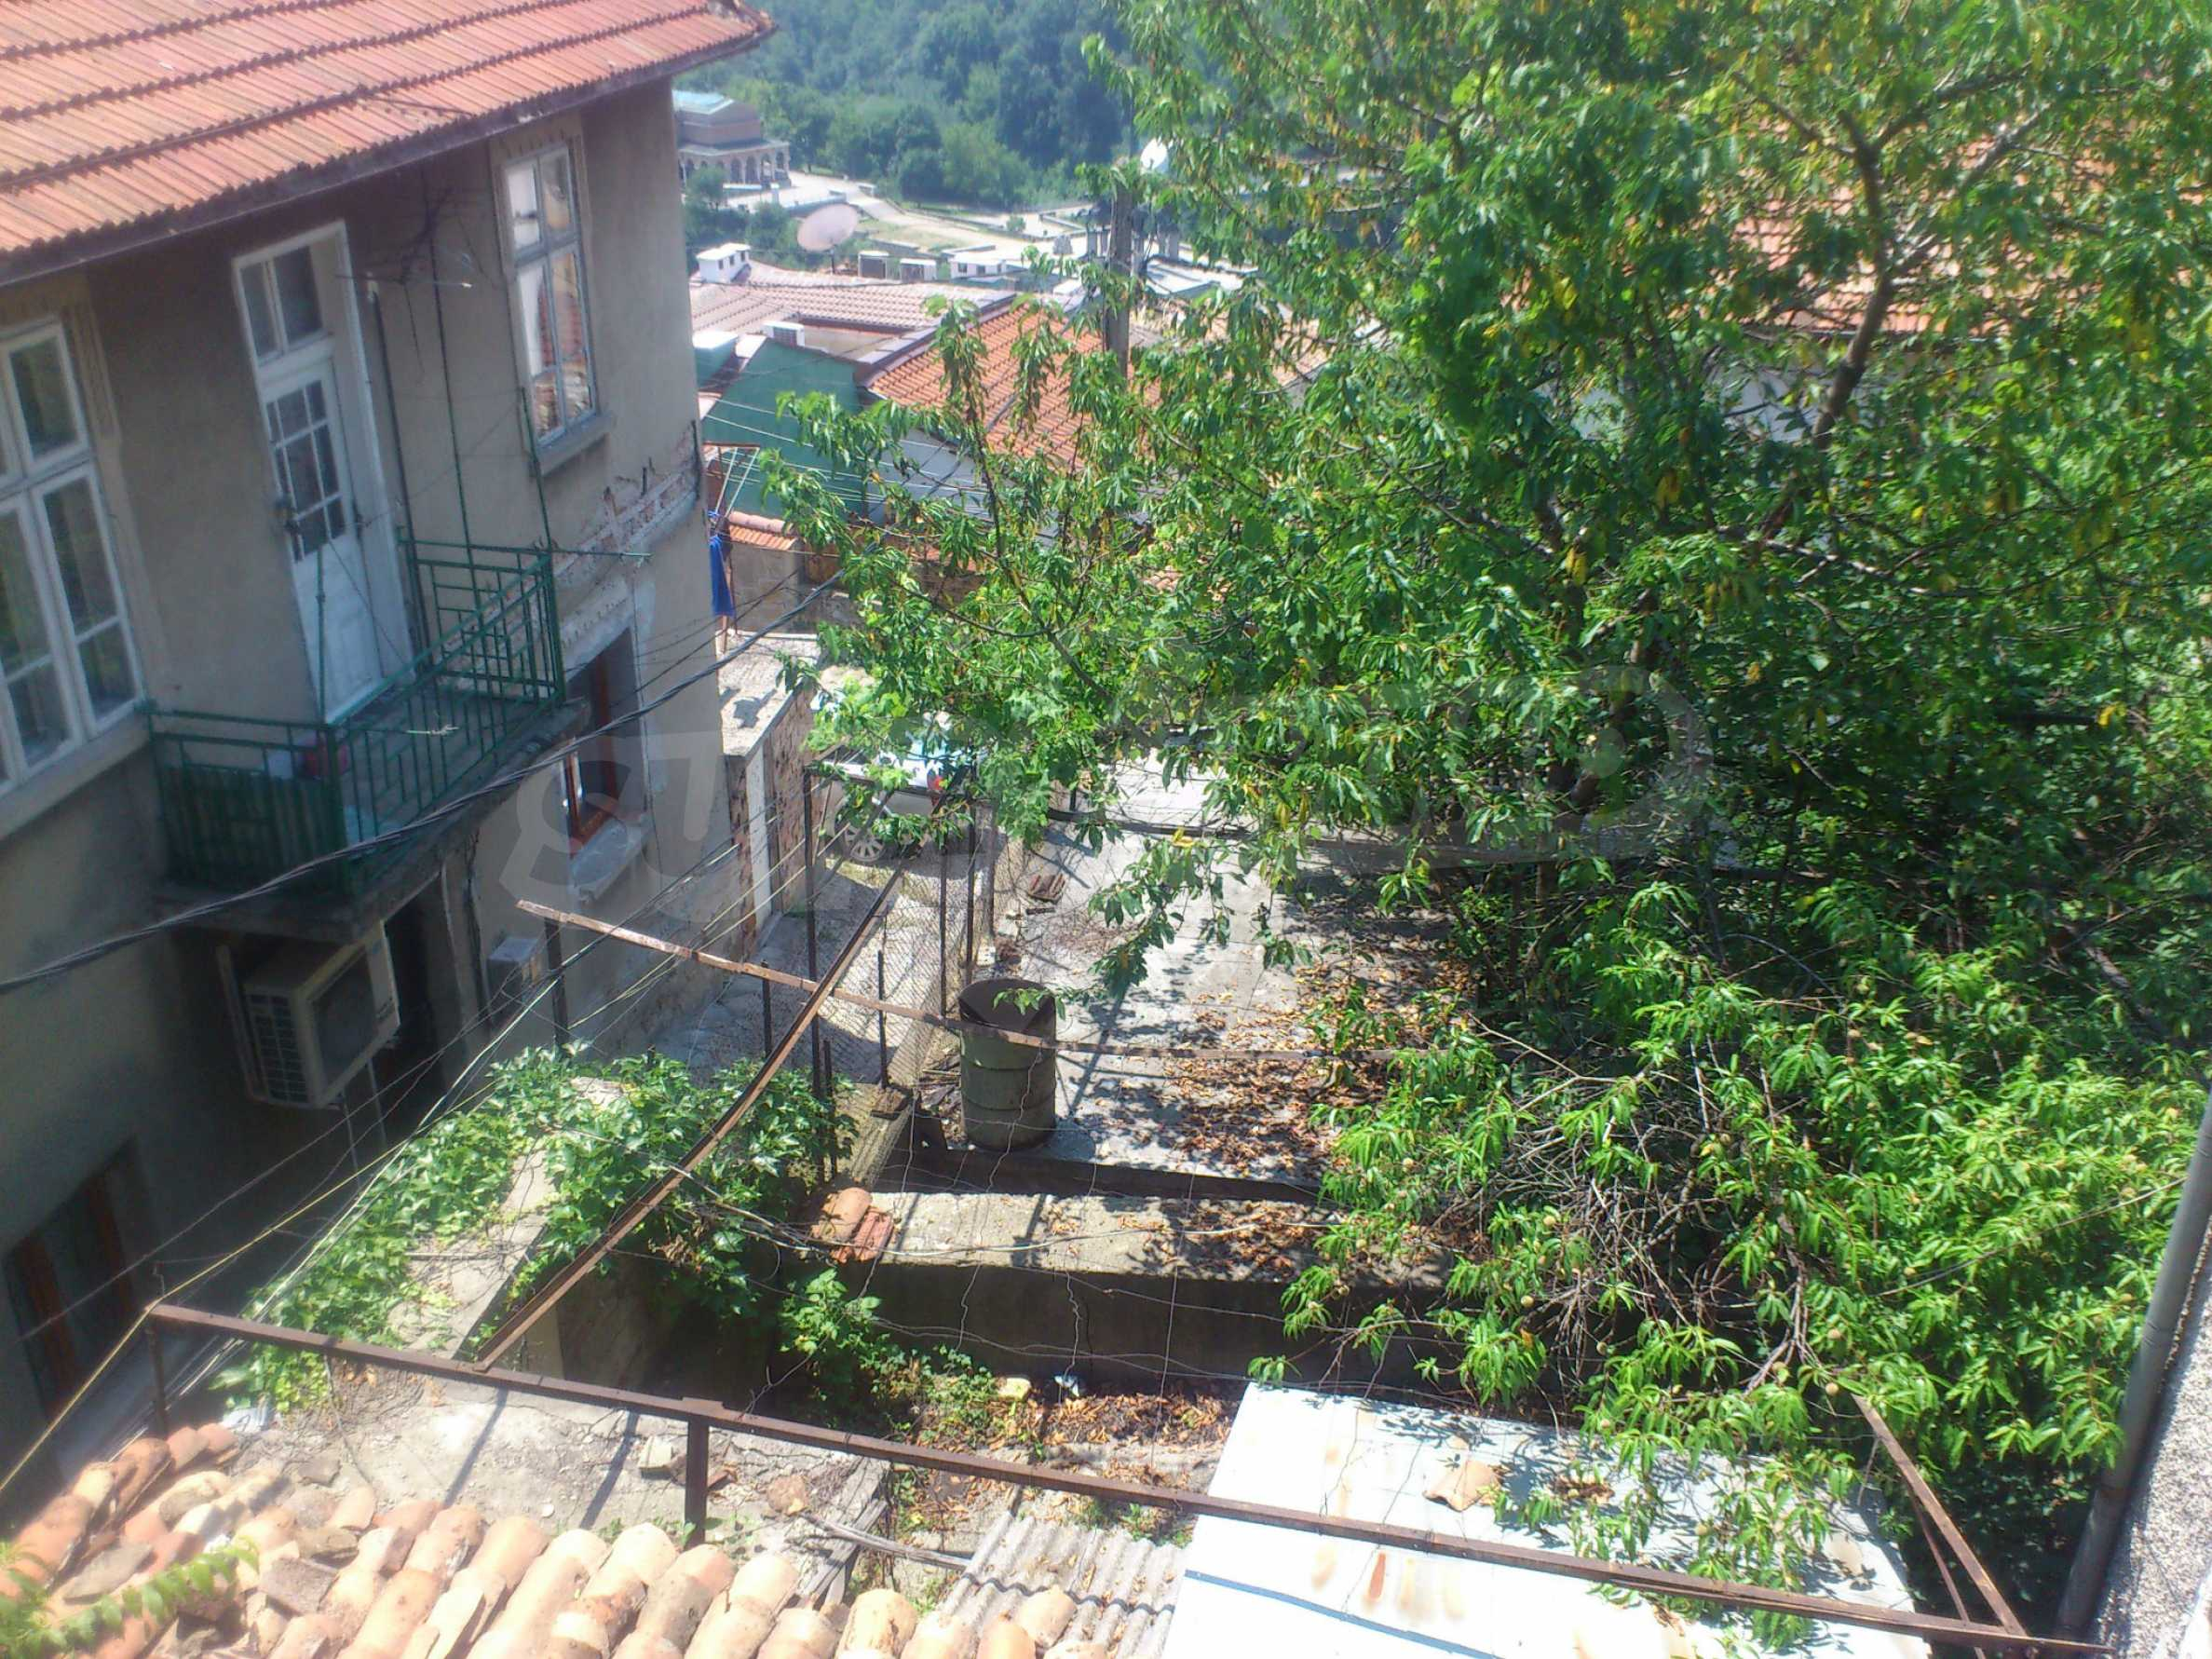 Traditional, spacious house located in the old part of Veliko Tarnovo 7